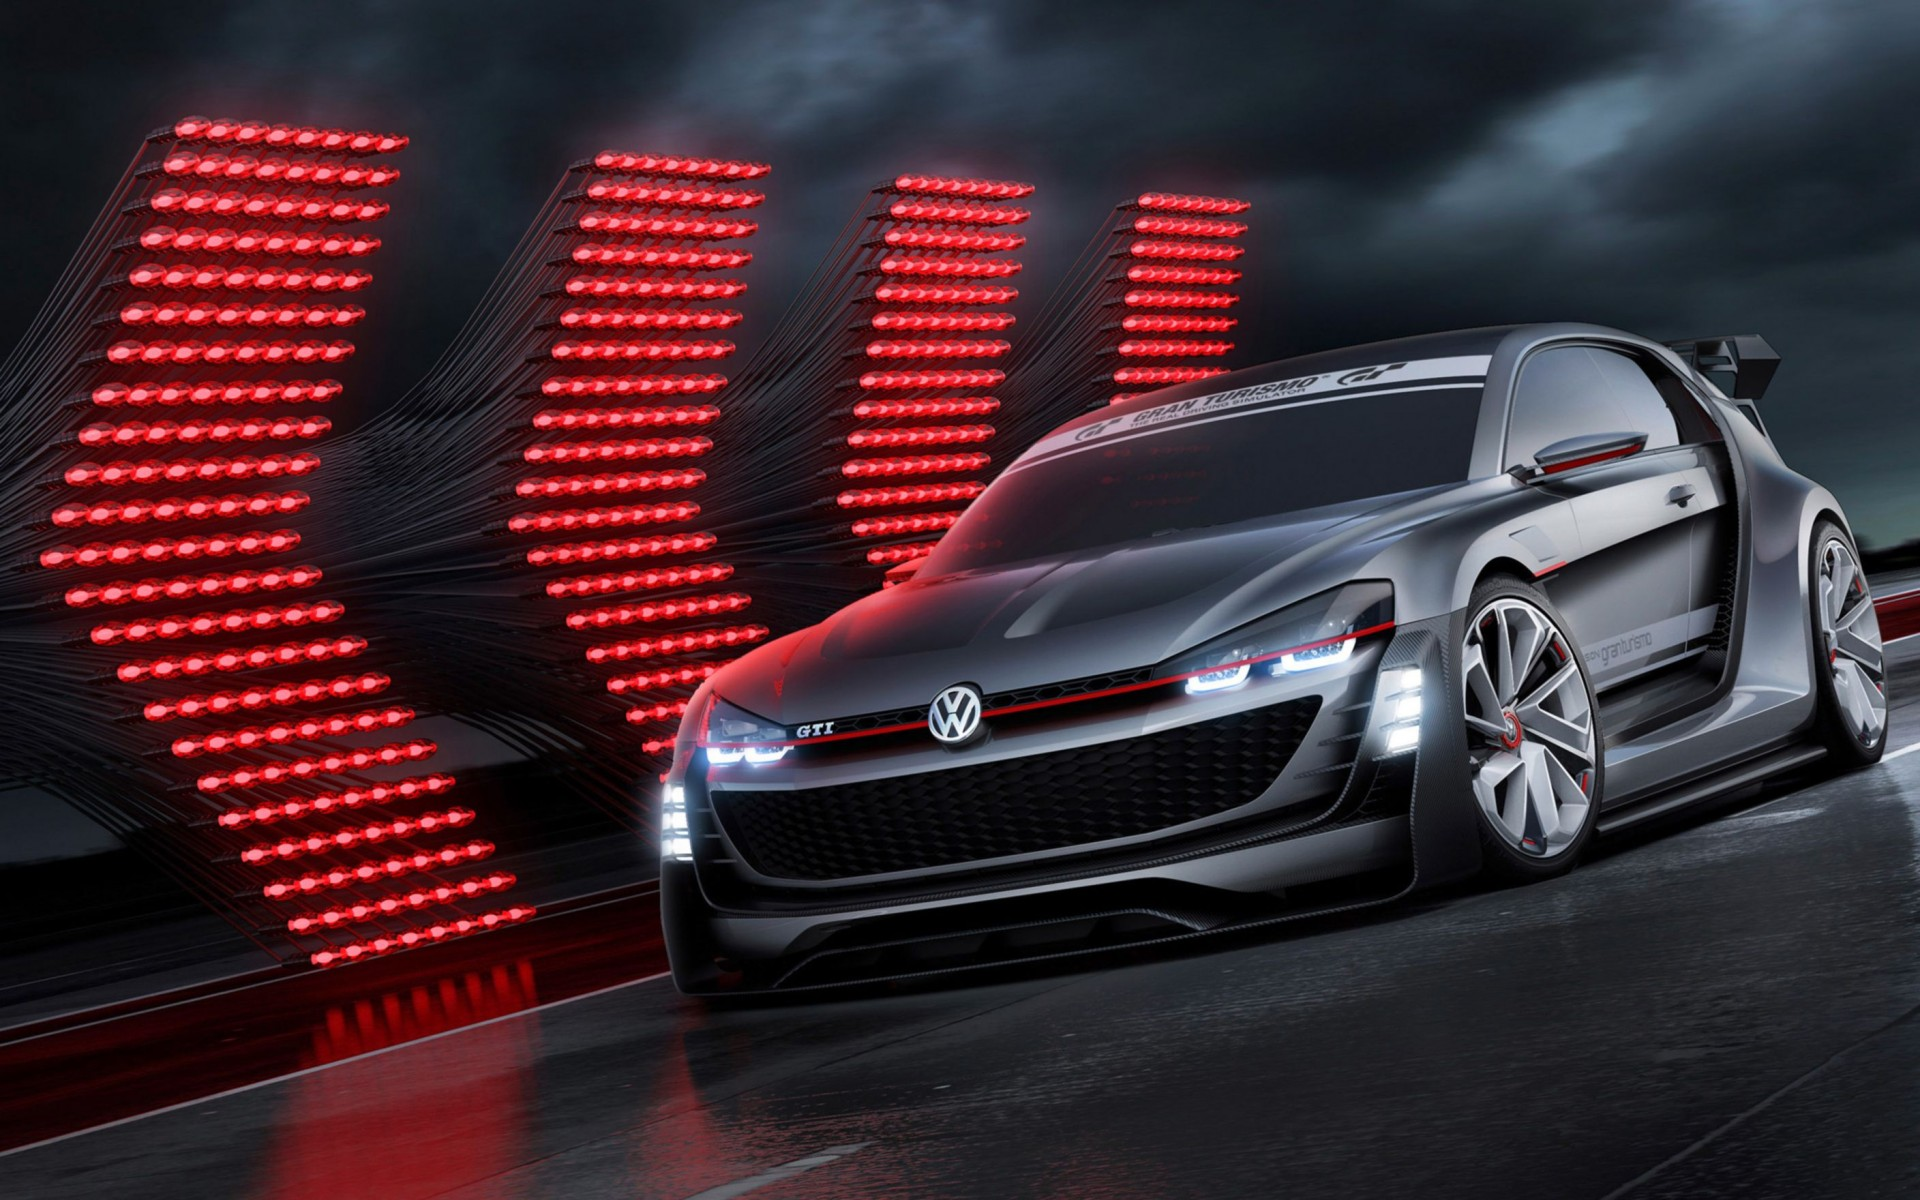 2015 Volkswagen Gti Supersport Vision Gran Turismo Concept Wide Wallpaper